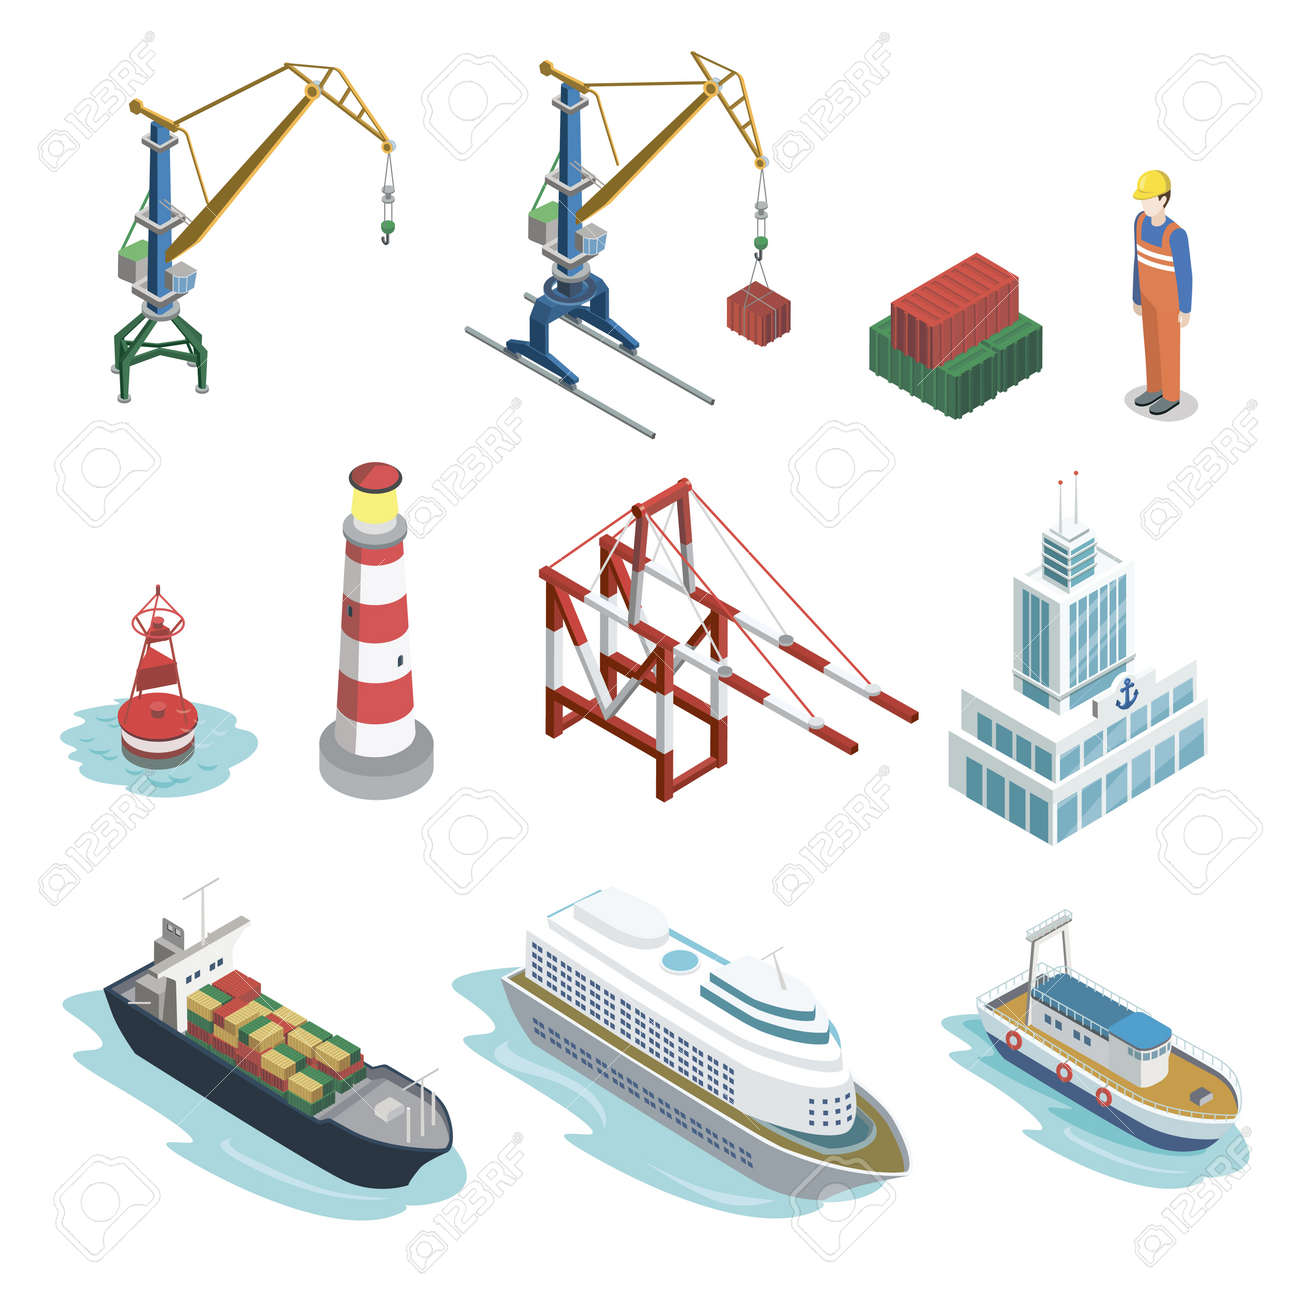 Sea shipping logistics isometric 3D elements. Commercial world marine delivery, freight transportation. Container ship, lighthouse, cargo crane, port, warehouse, navigational buoy vector illustration. - 96843981